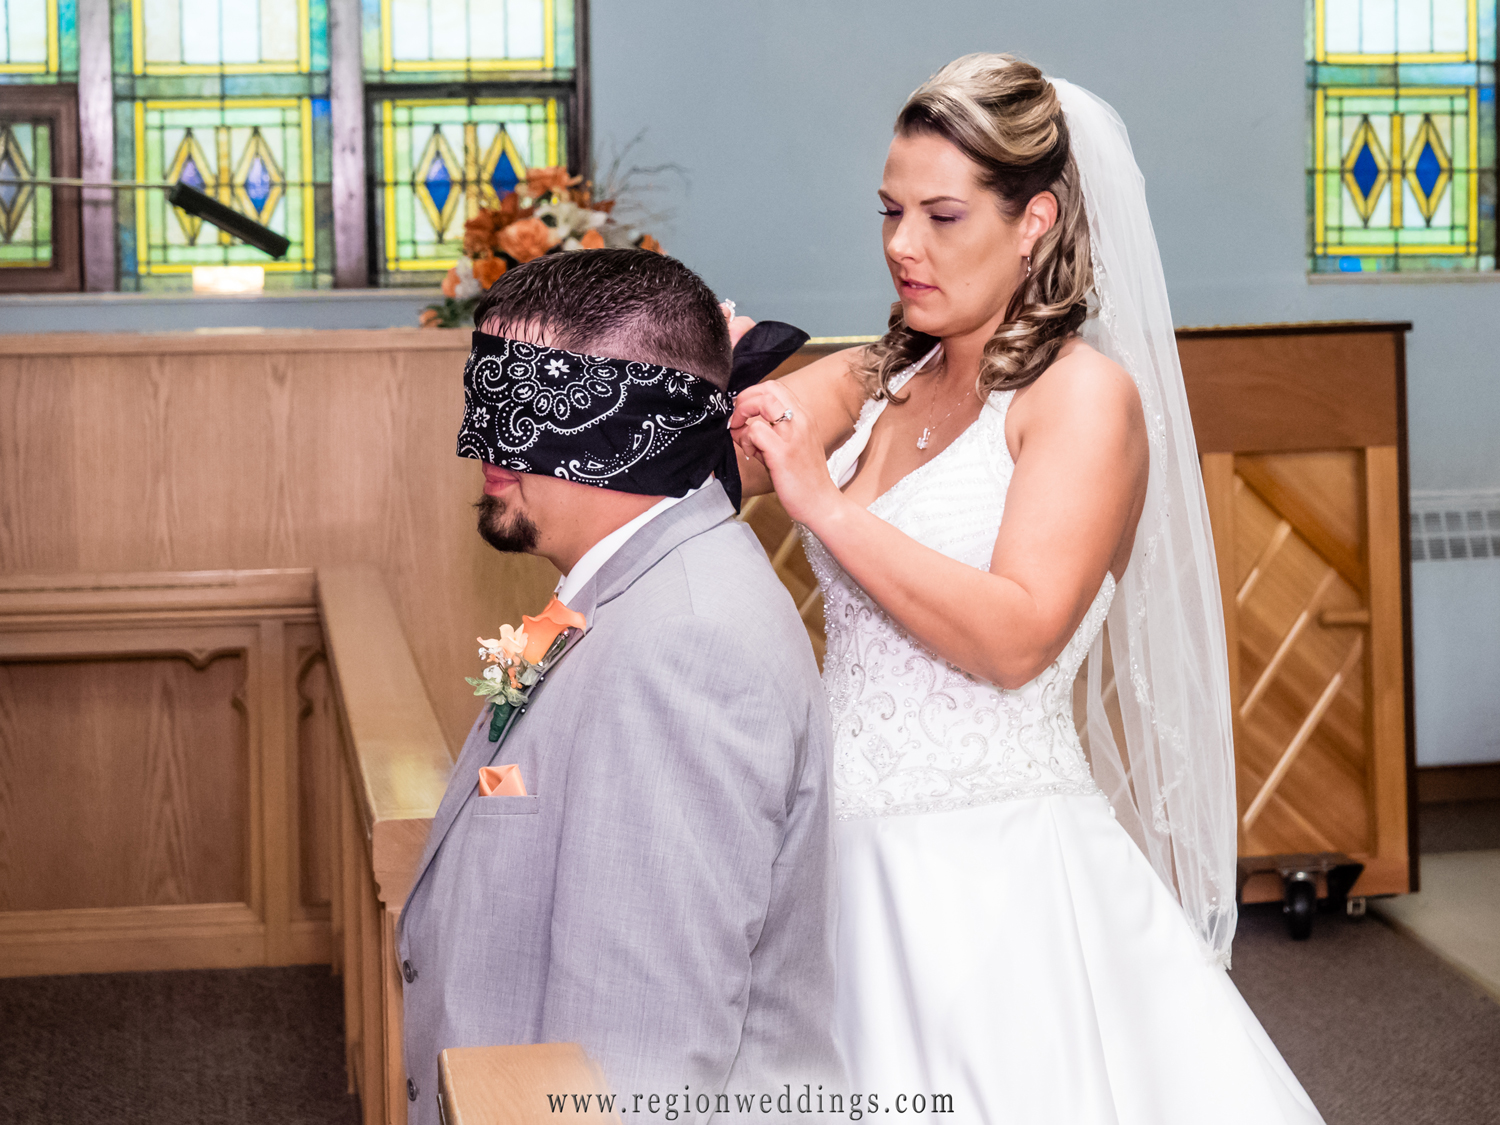 blindfolded-groom.jpg